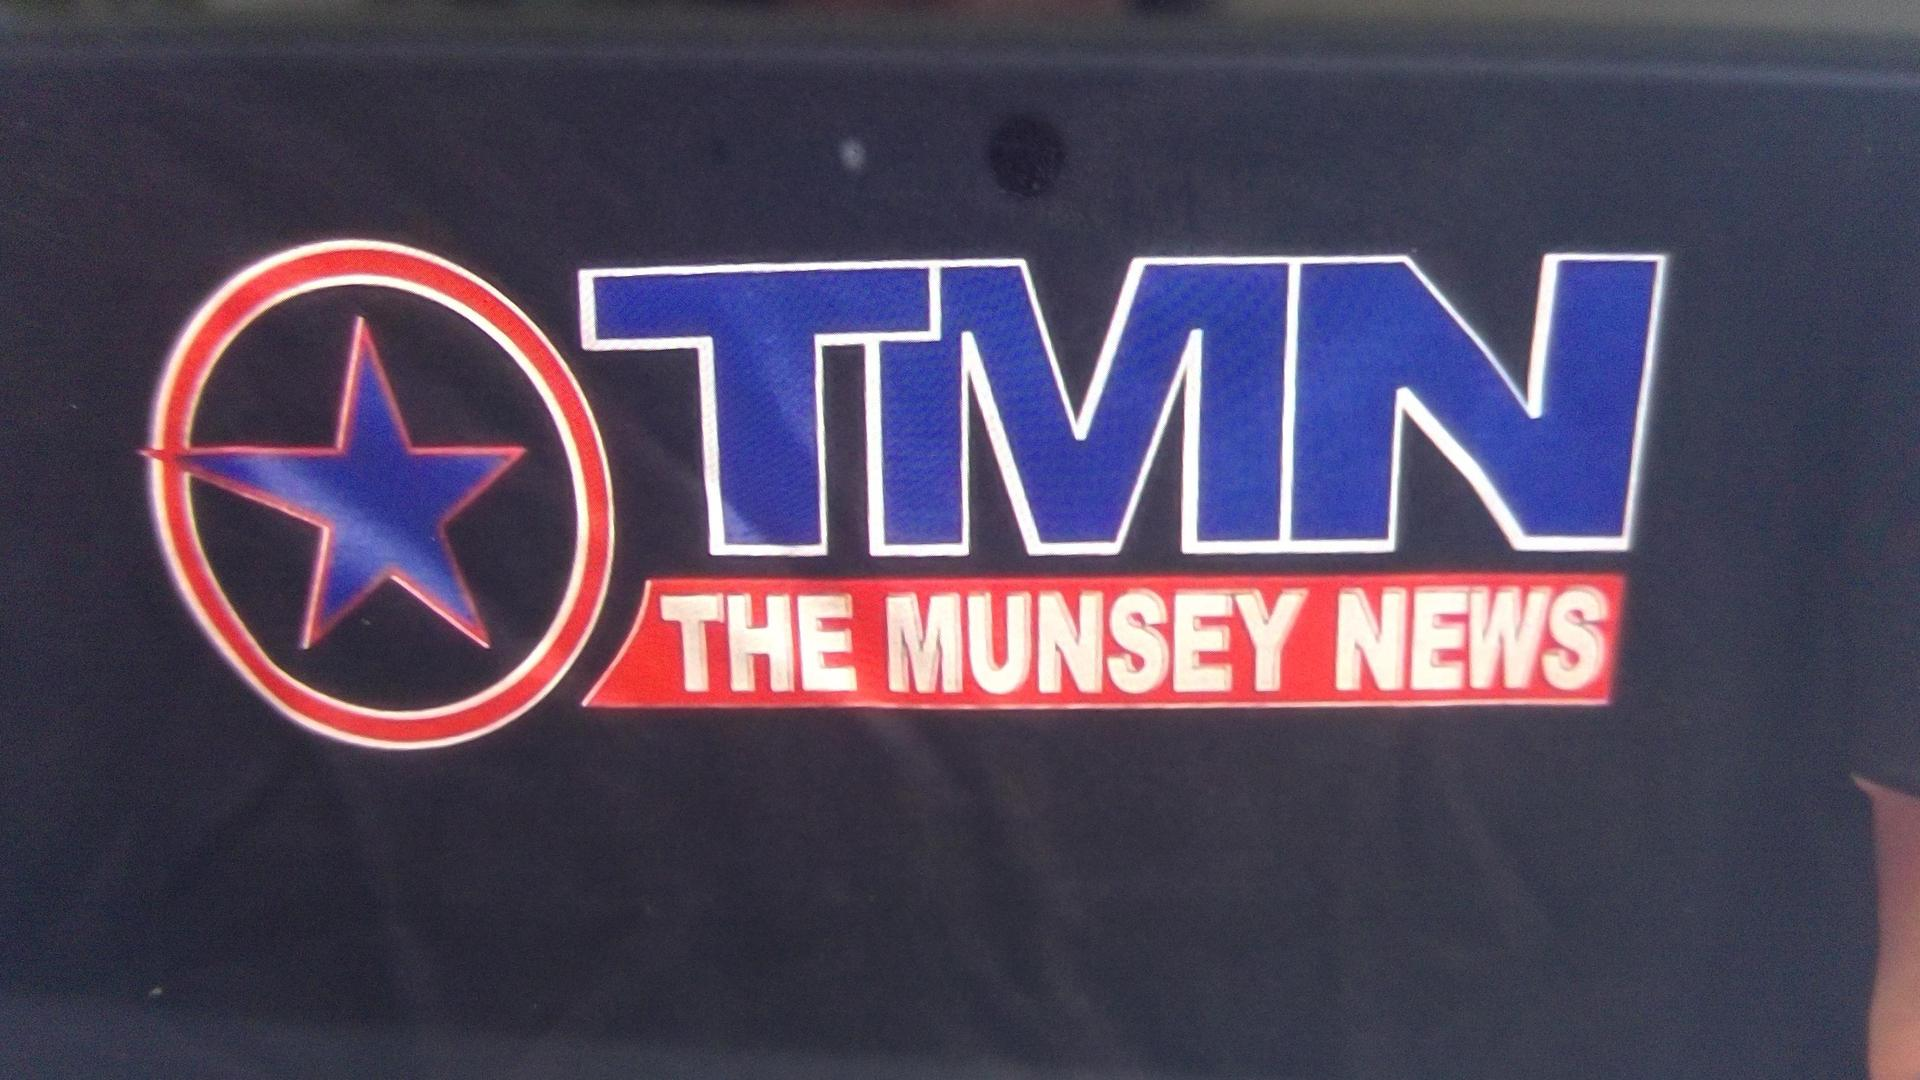 The Munsey News Reporters!